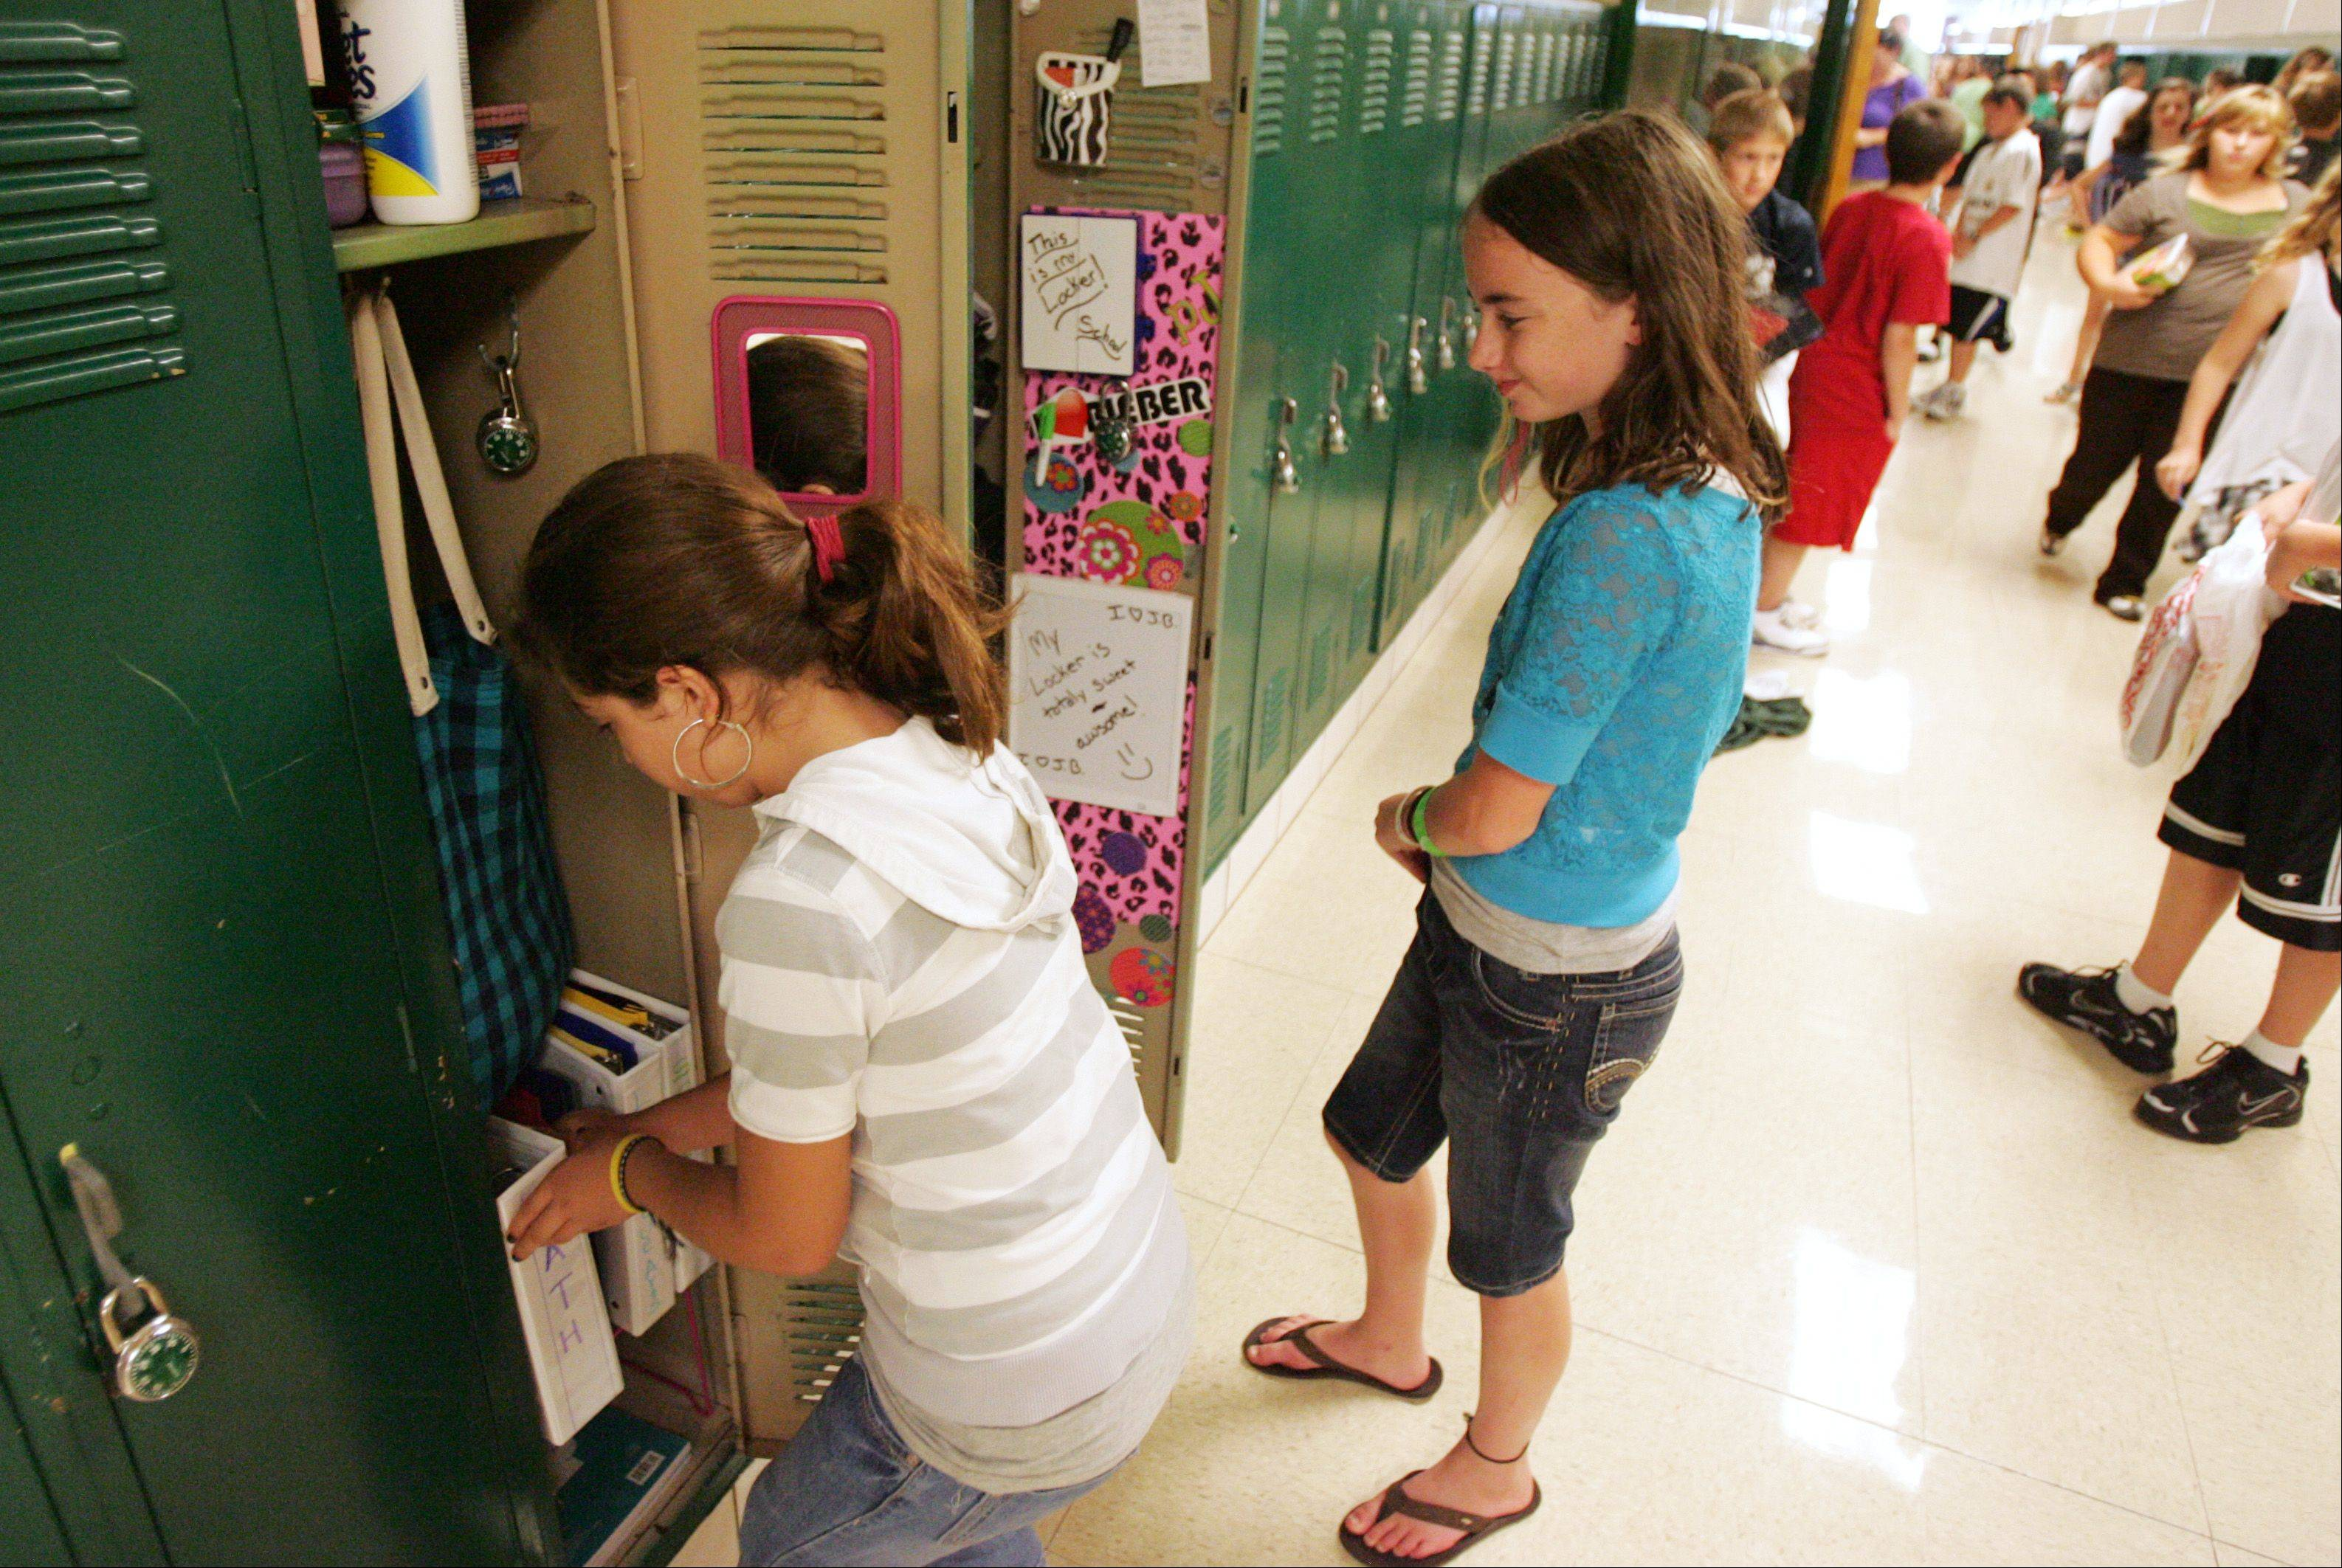 Sixth-grade students Ahtziri Orozco, left, and Paige Norkus get the hang of dealing with their lockers Wednesday morning at Haines Middle School in St. Charles.